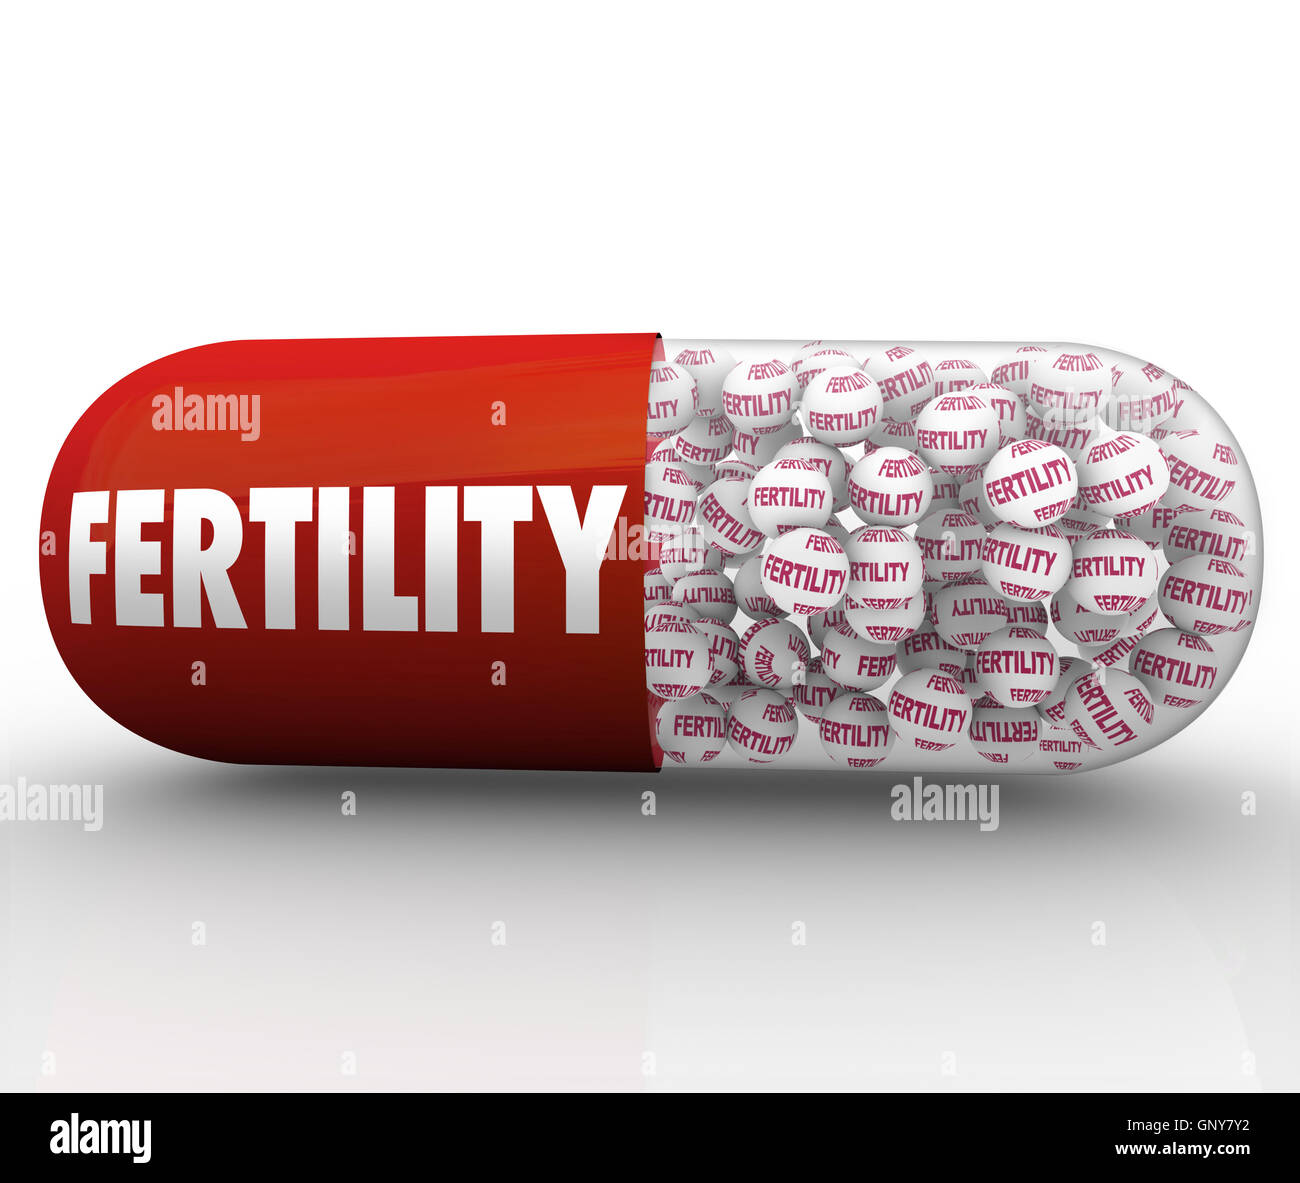 Fertility Capsule Pill Treatment for Infertility - Stock Image